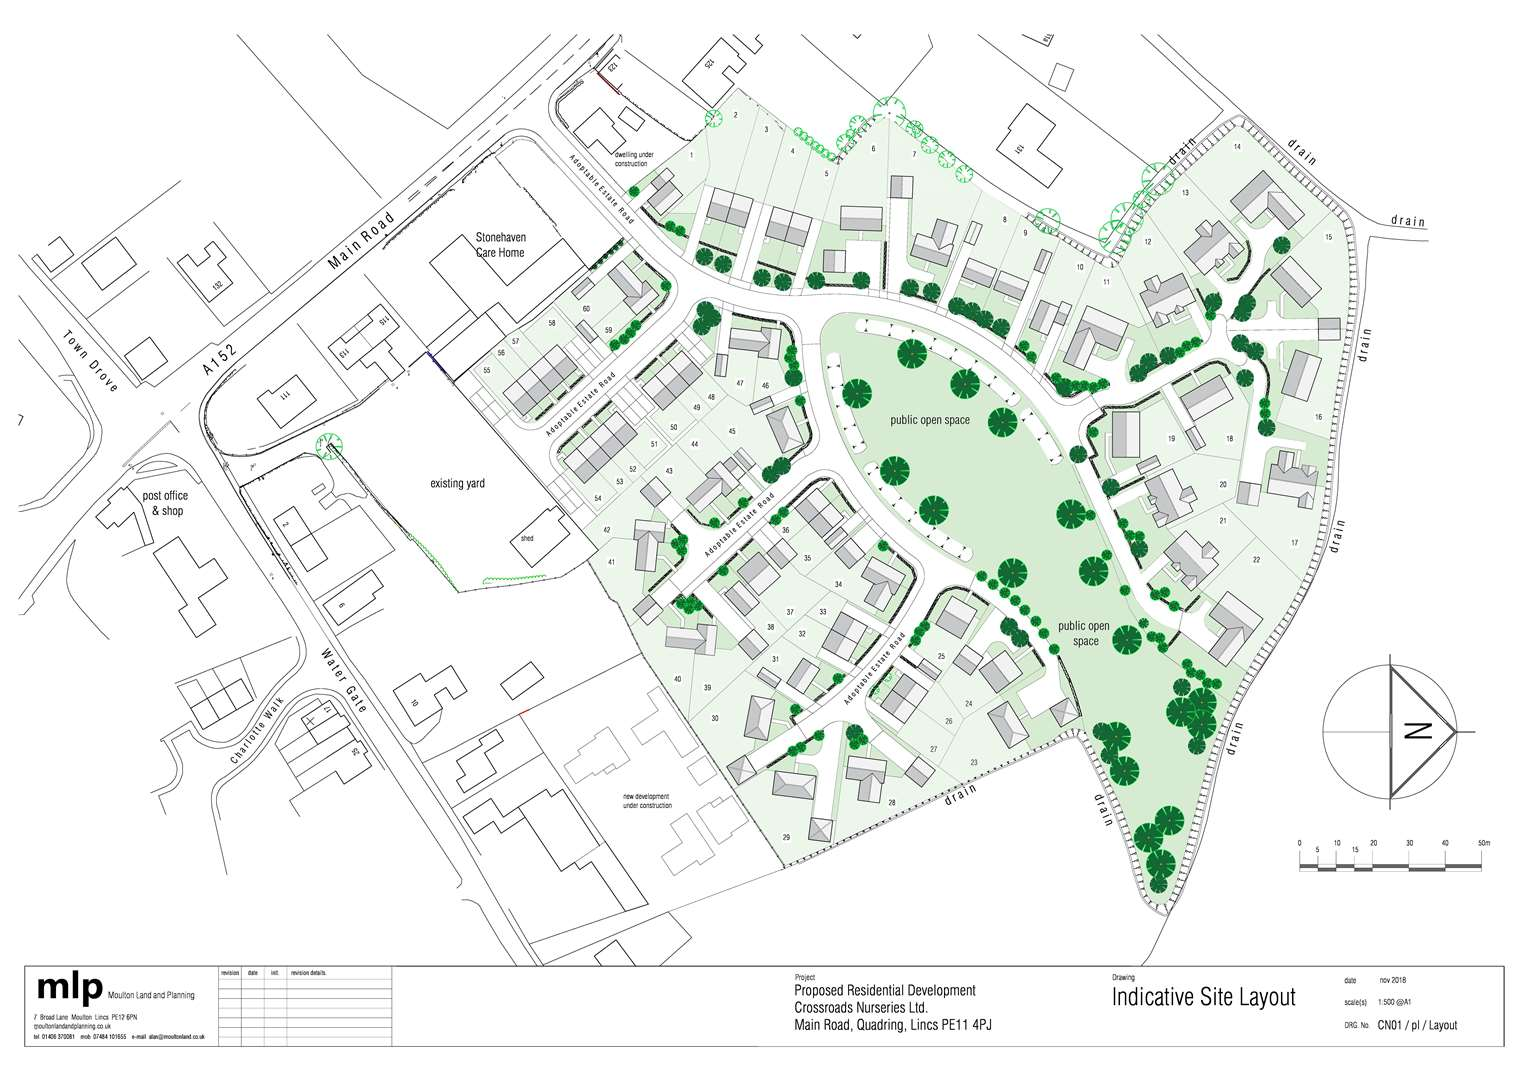 Plans for up to 60 new homes at the Crossroads Nurseries site, off Main Road, Quadring.Image supplied by Moulton Land and Planning Ltd.